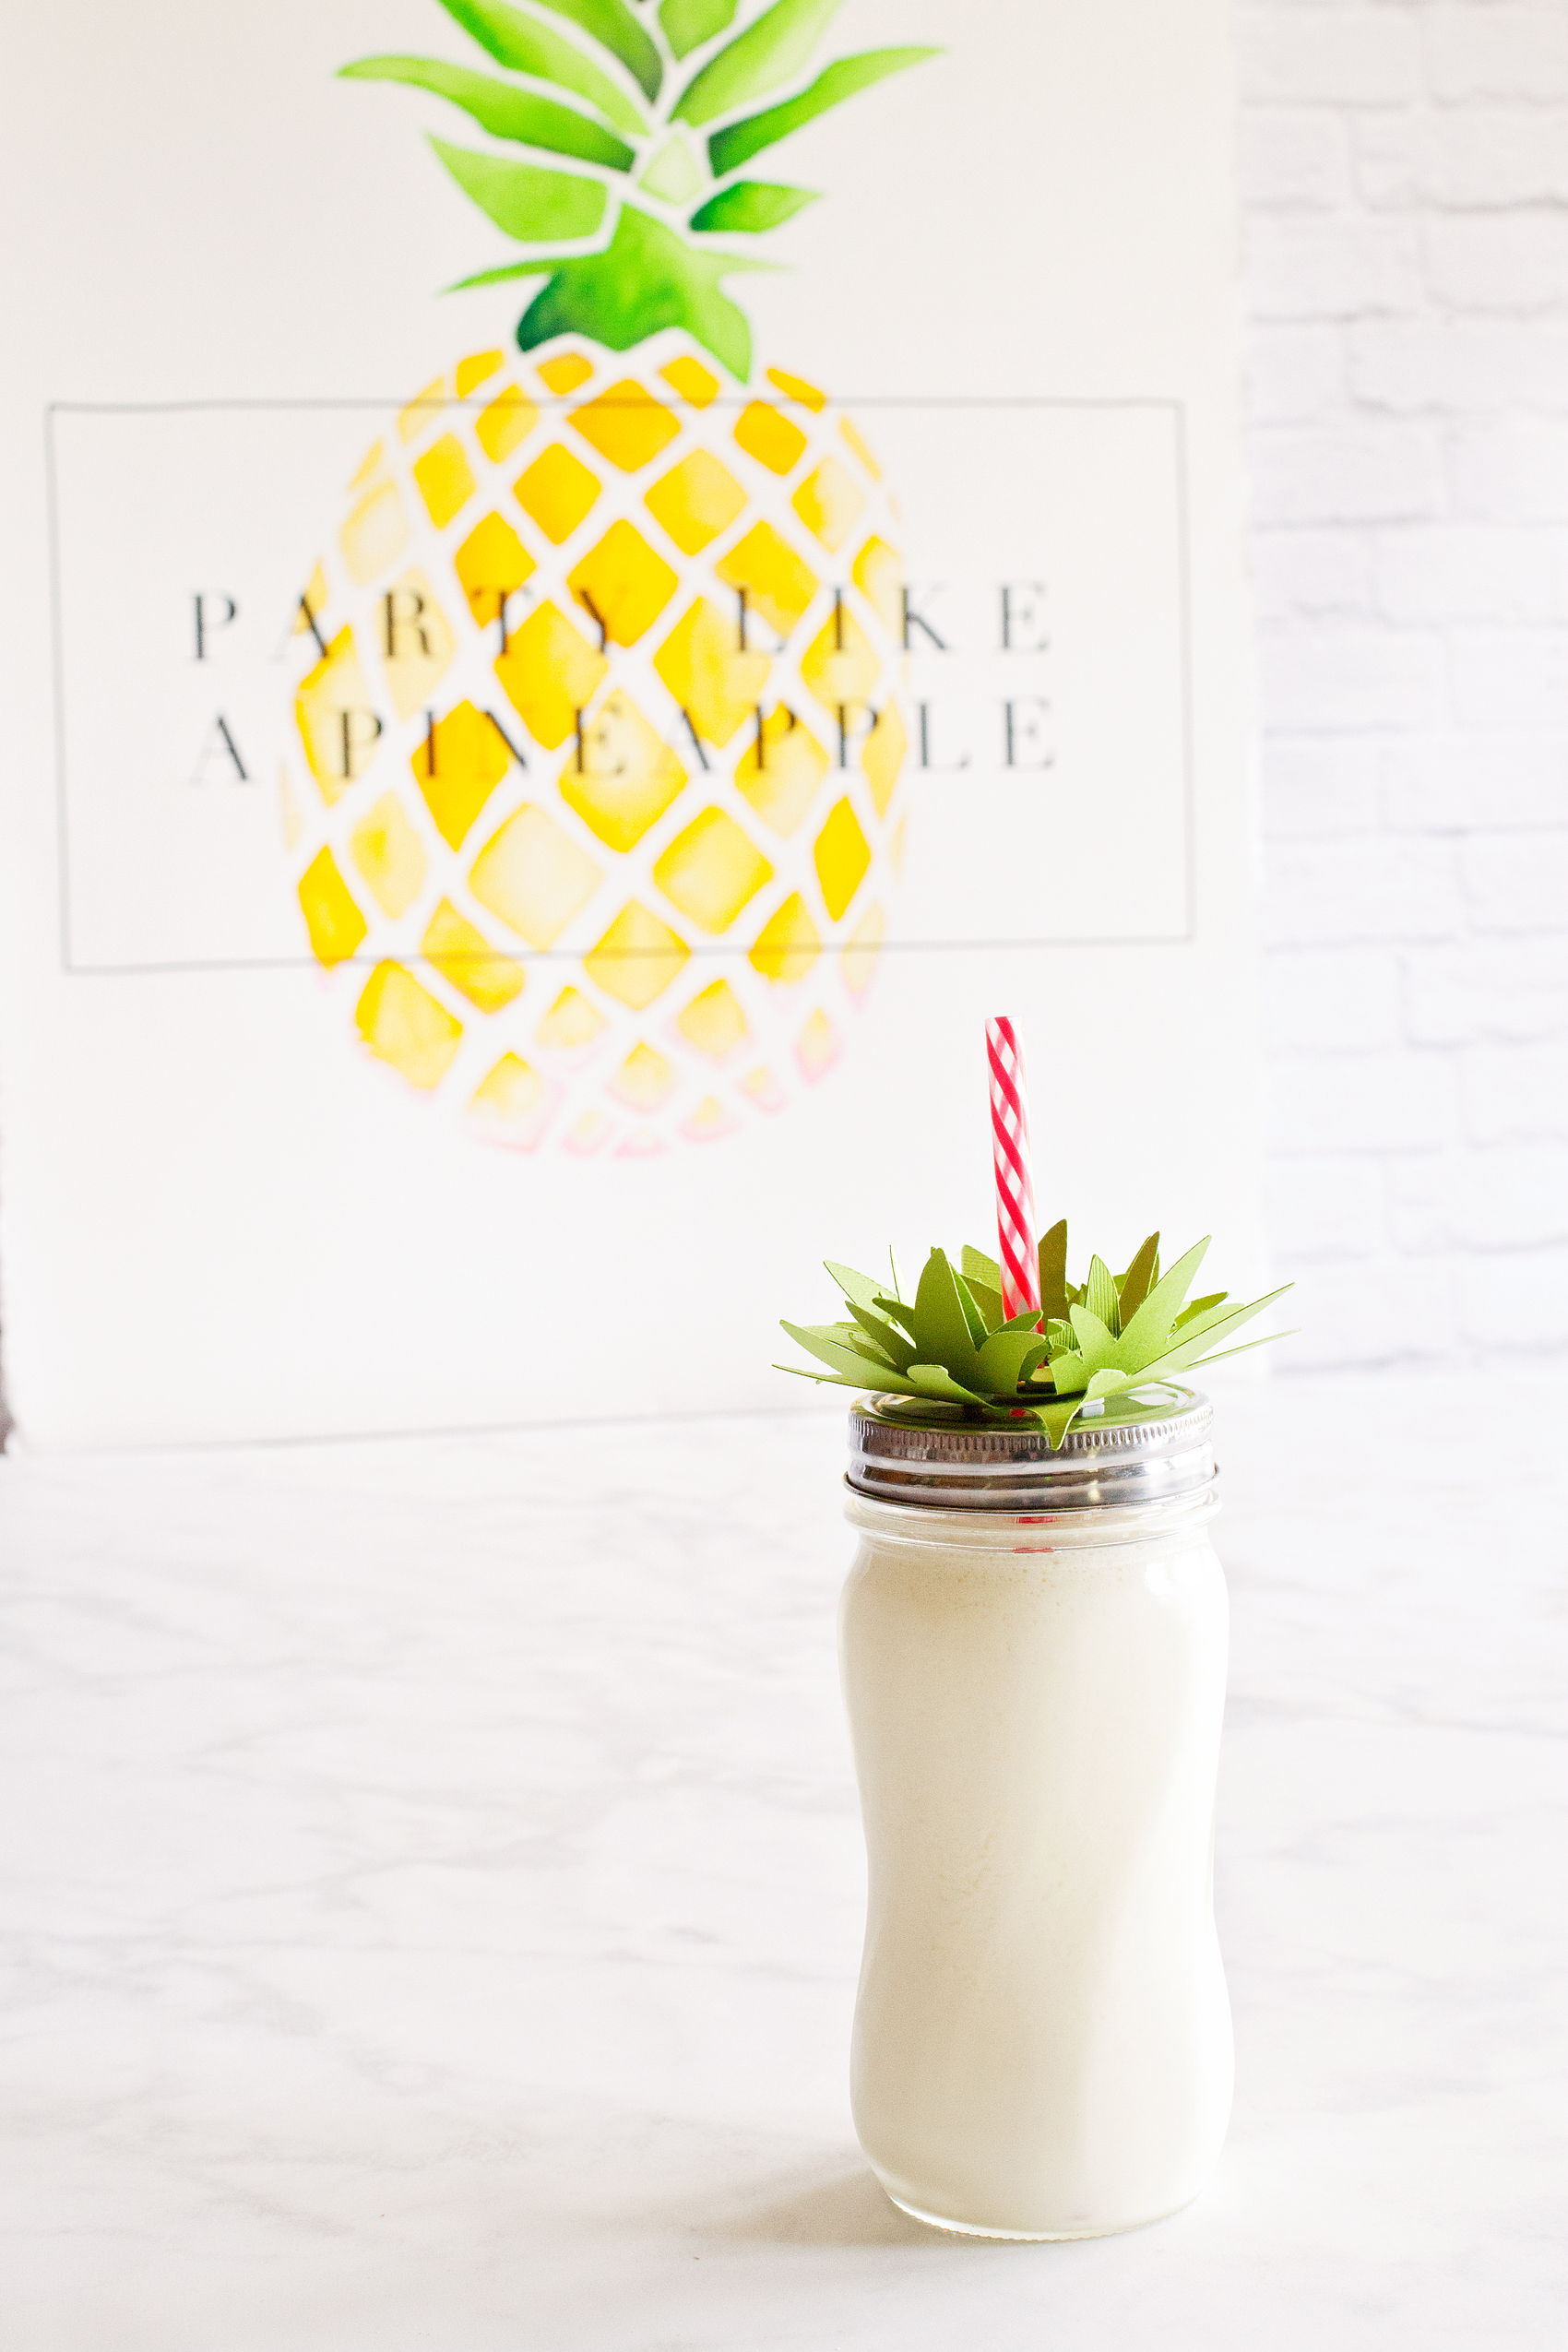 The cutest Dole Whip EVER! This Pineapple Party is perfect for all ages. Come on over to WhipperBerry to learn how to recreate this EASY party!